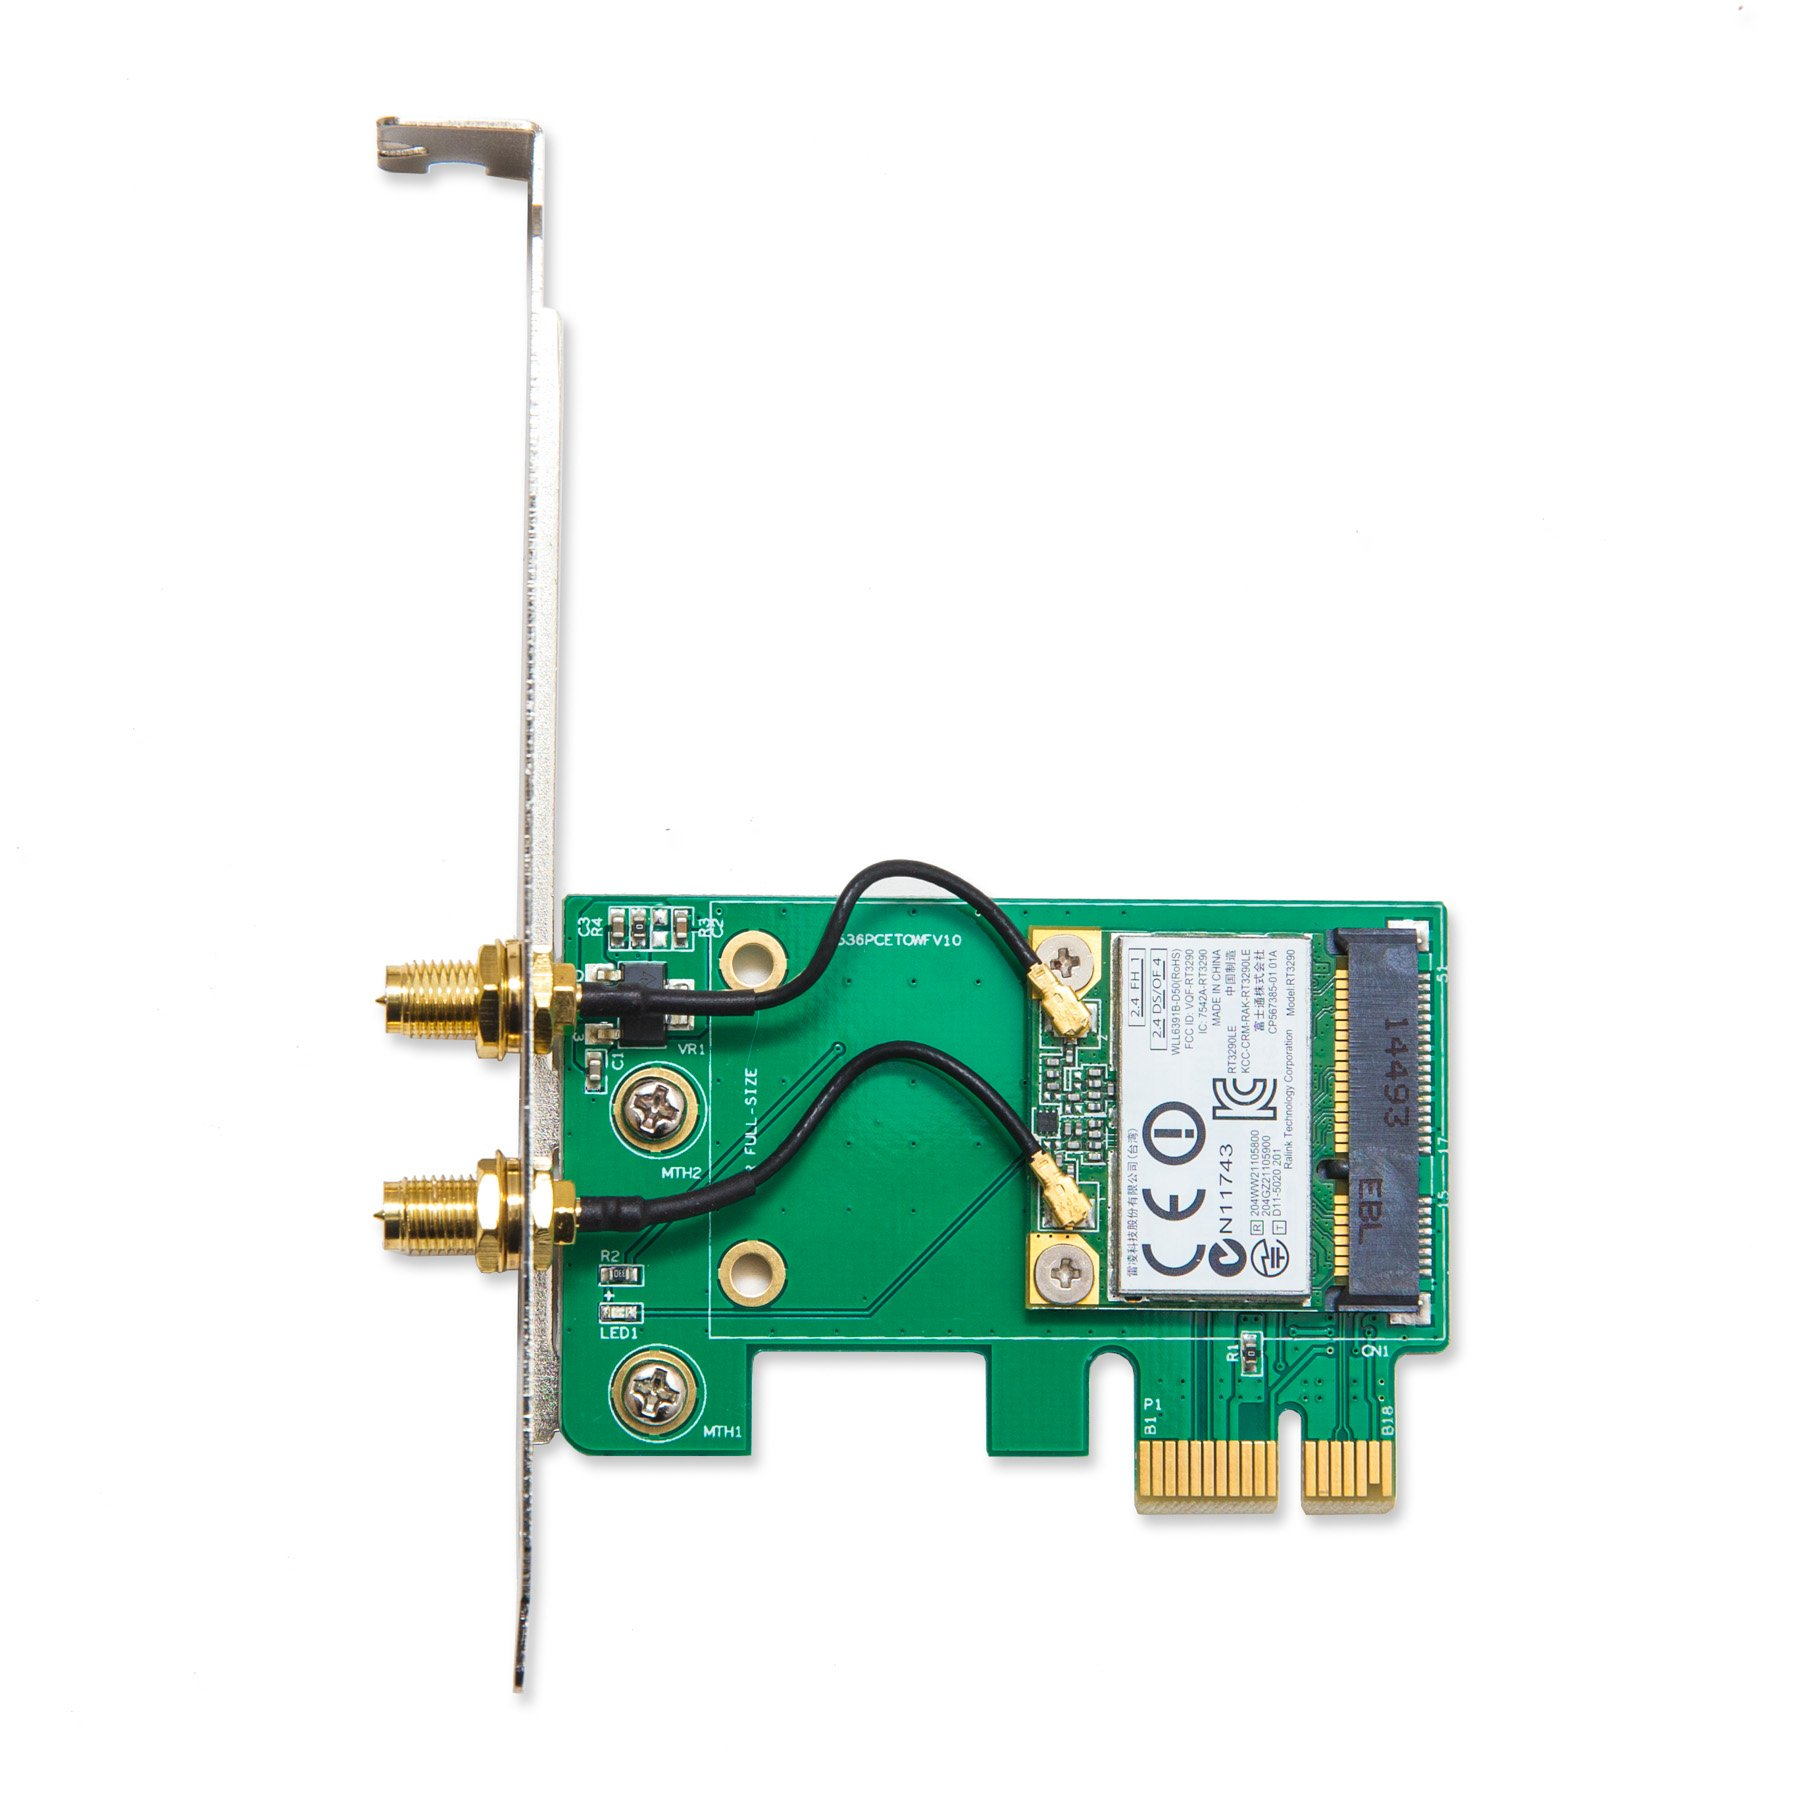 Io Crest Sy-pex23063 Ieee 802.11n Bluetooth 3.0 - Wi-fi/bluetooth Combo Adapter - Pci Express X1 - 150 Mbit/s - 2.40 Ghz Ism - 5 Ghz Unii - Internal (169210)